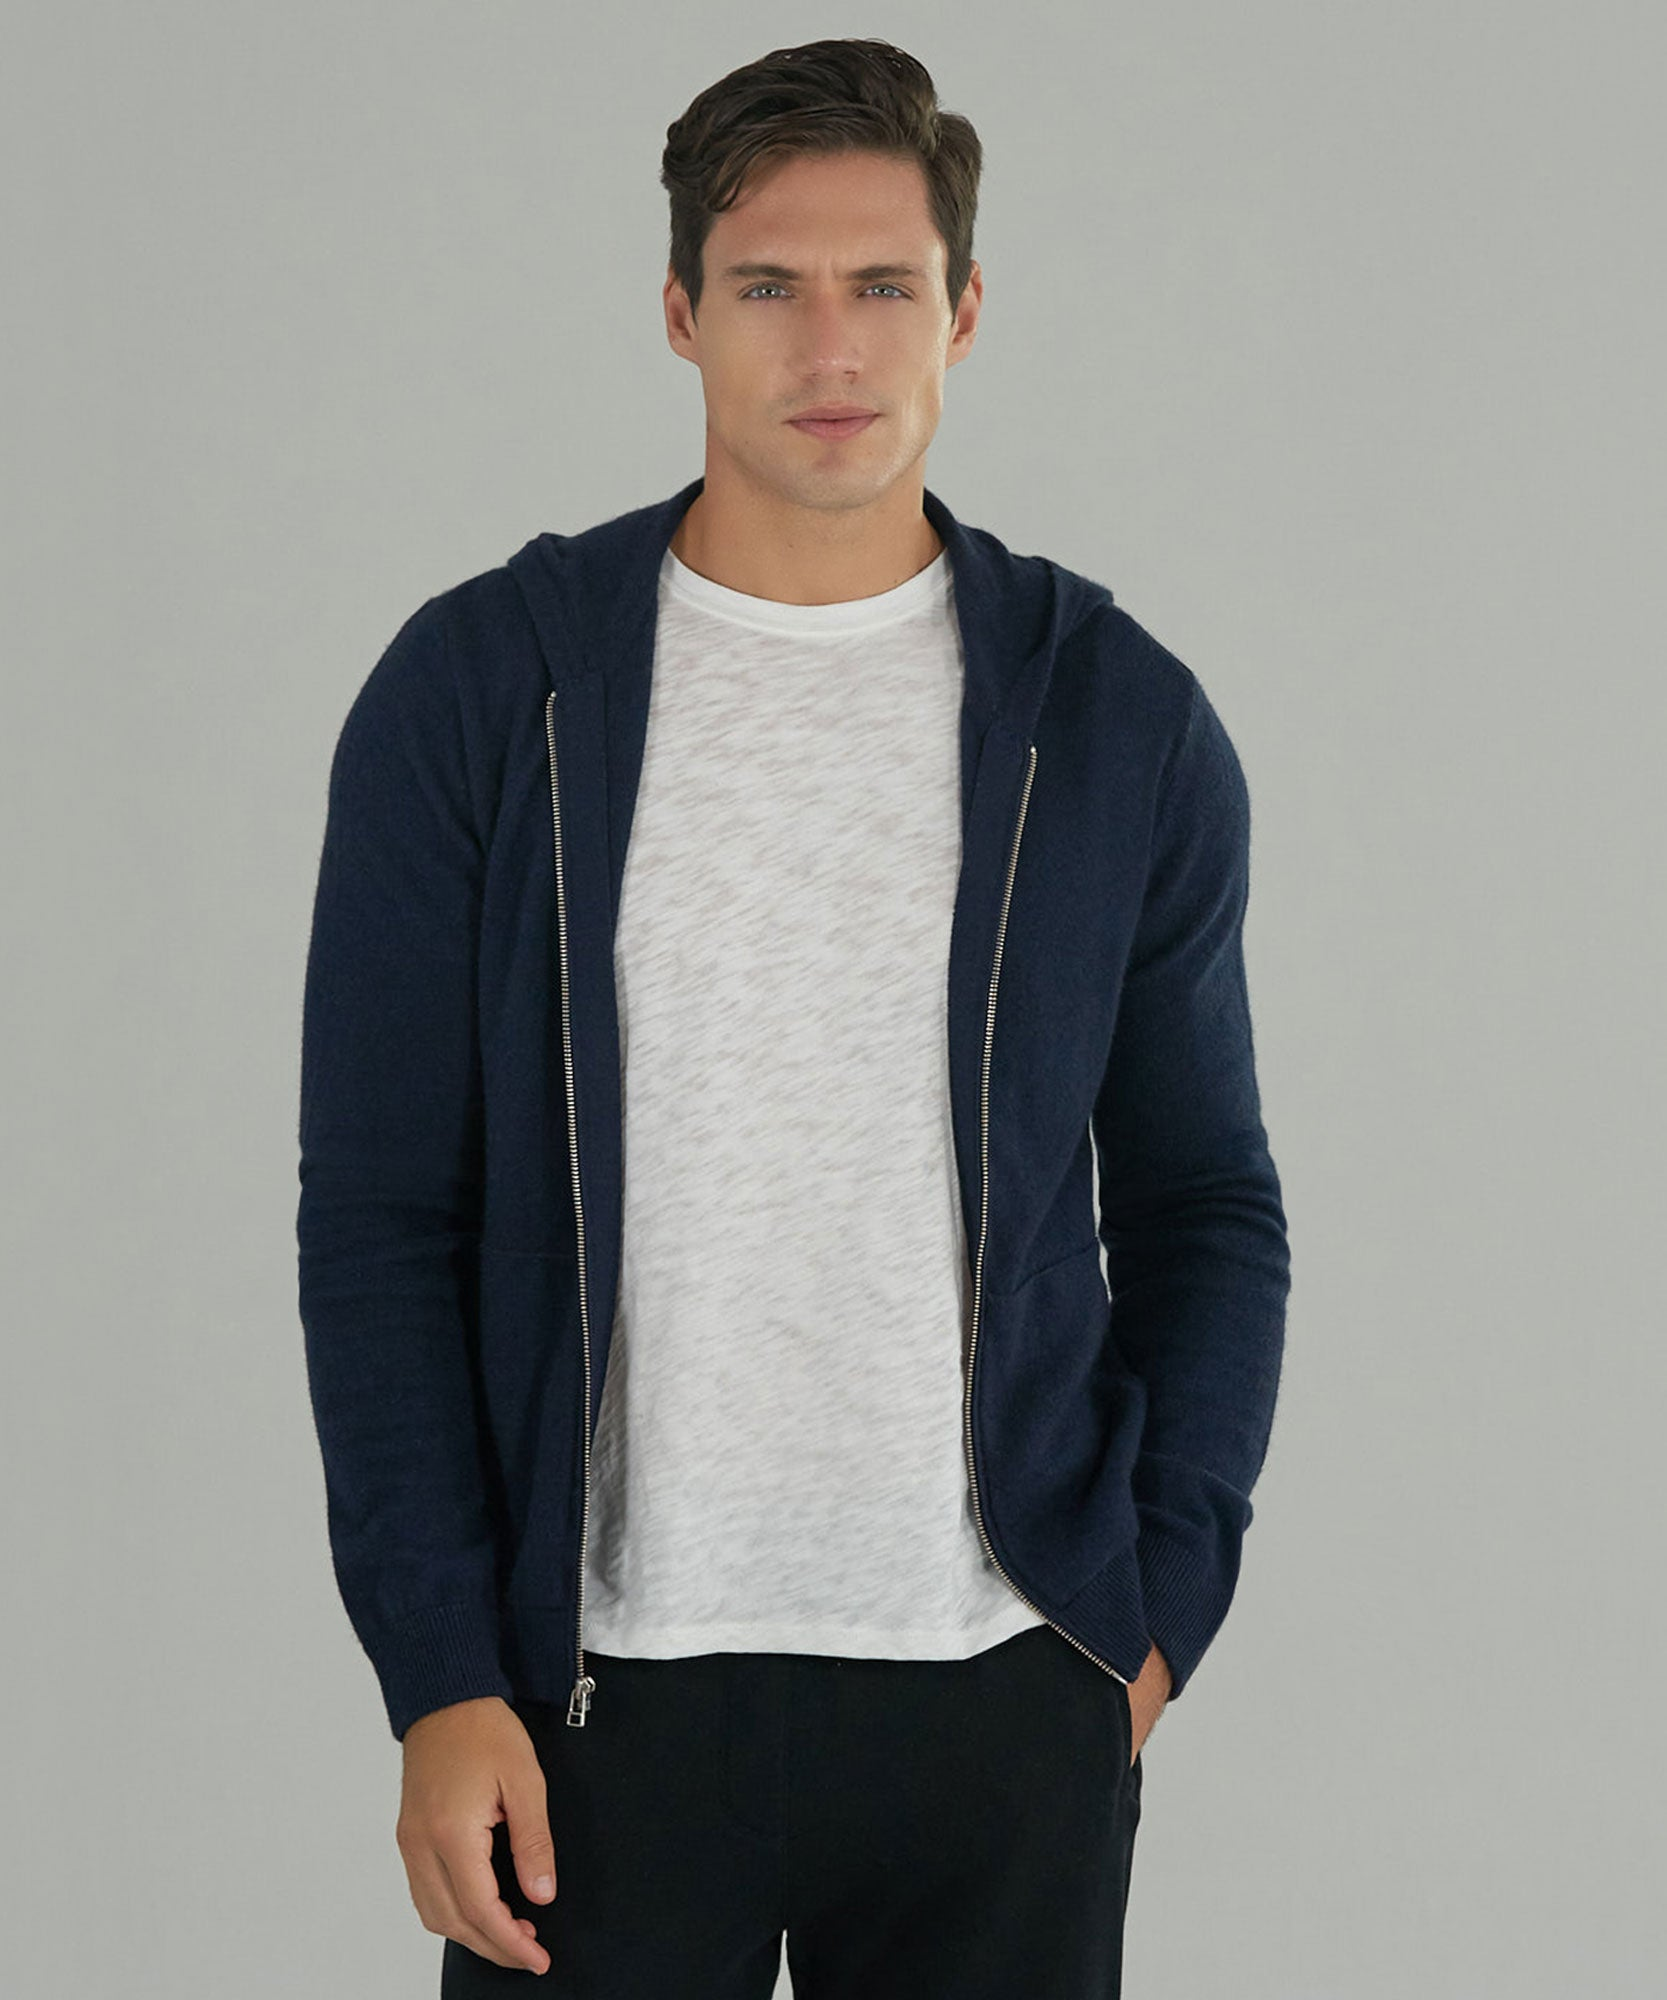 Midnight Cashmere Blend Zip-Up Hoodie - Men's Sweater by ATM Anthony Thomas Melillo